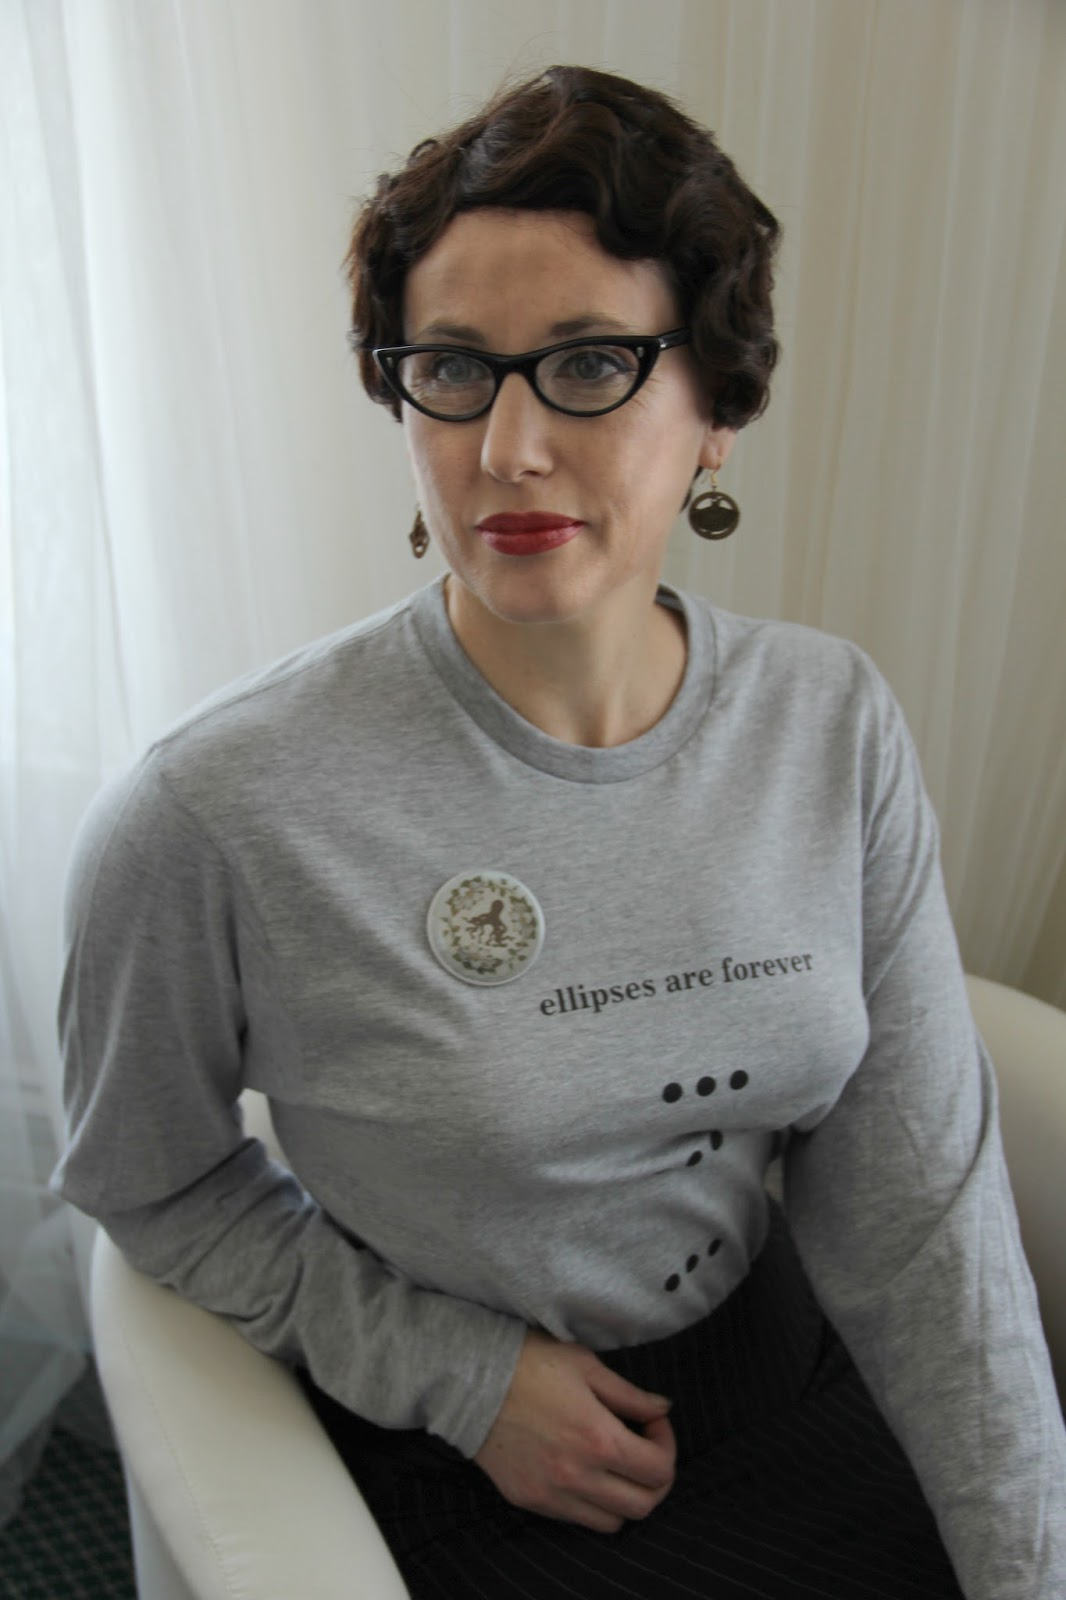 Cheap Cool Stuff >> Gail Carriger Merchandise Now Available on Zazzle - Gail Carriger - Gail Carriger